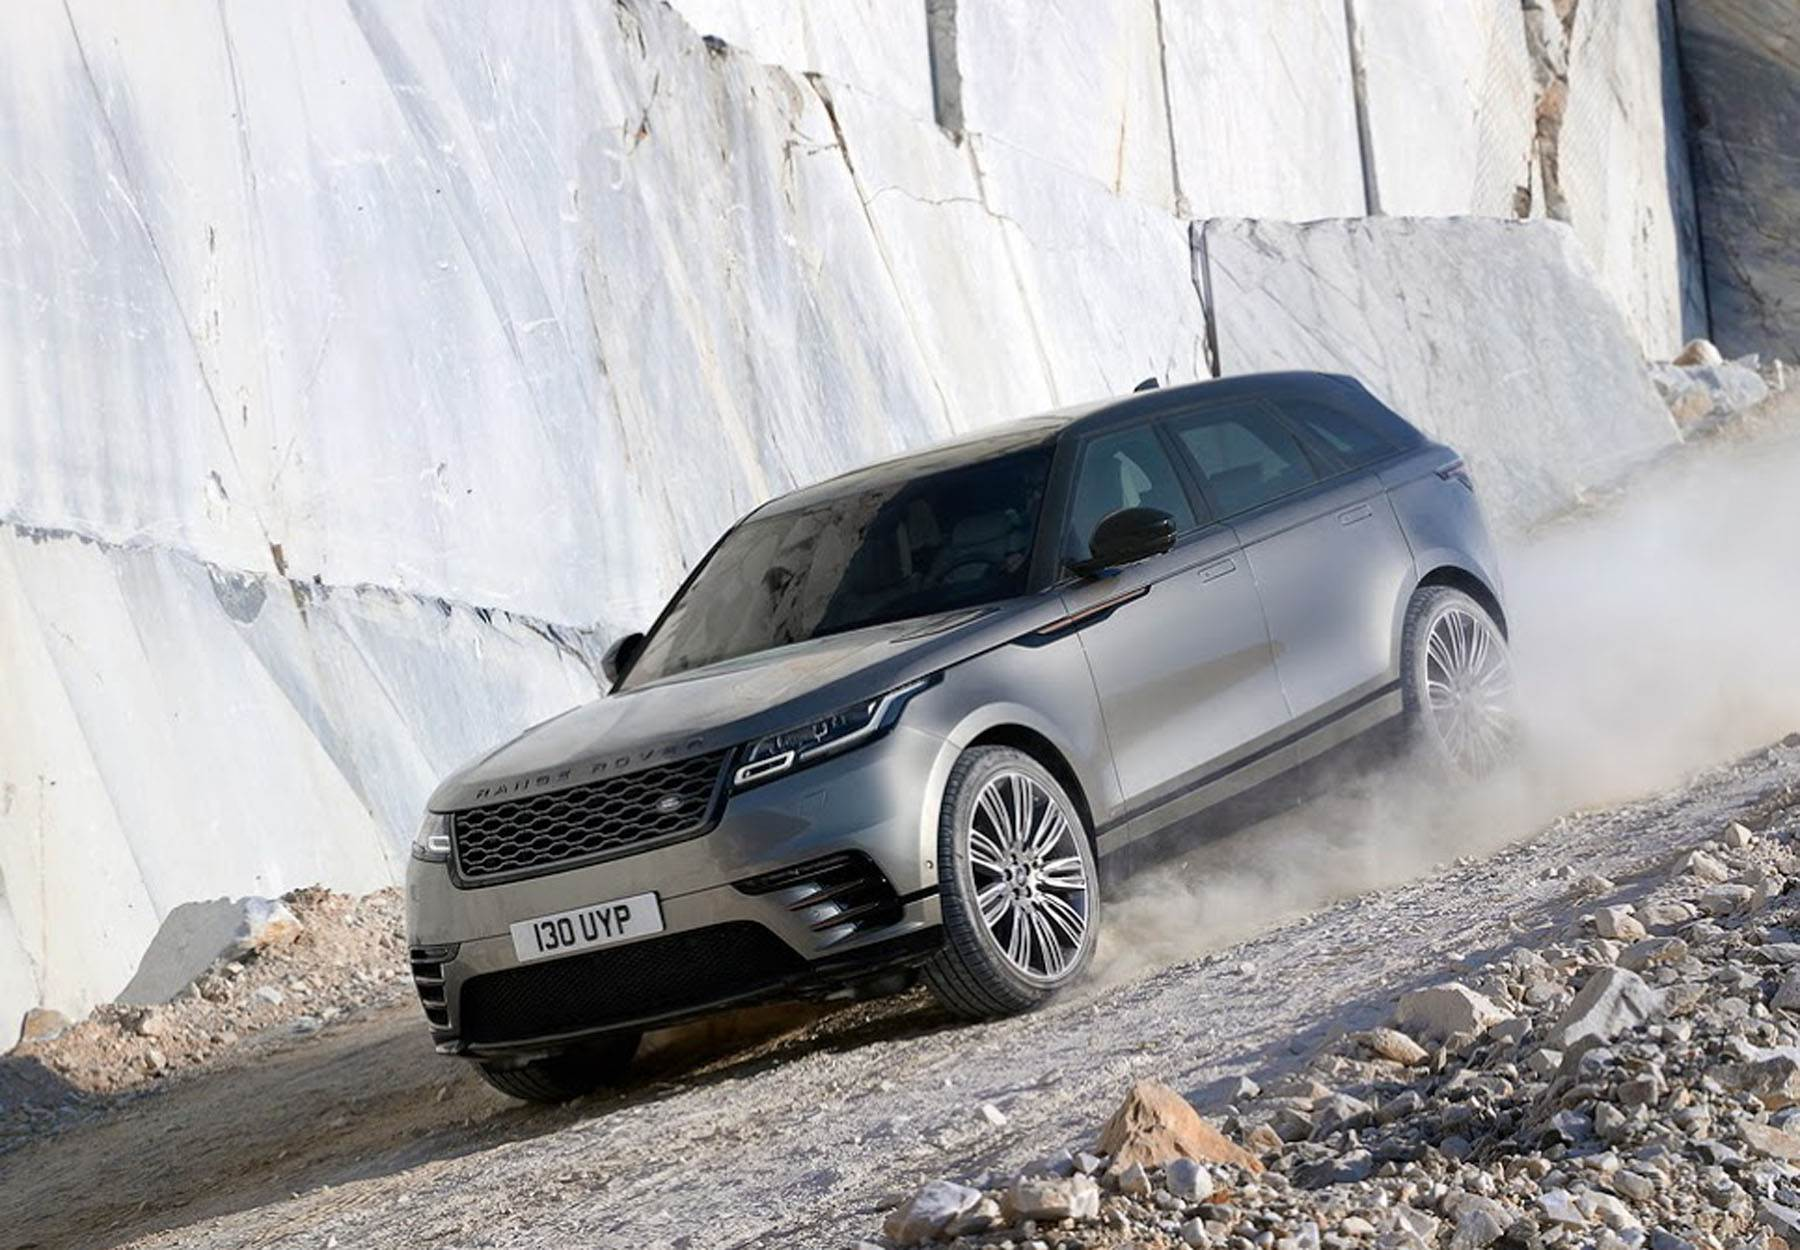 2017 Range Rover Velar to be priced from Rs 75 lakh